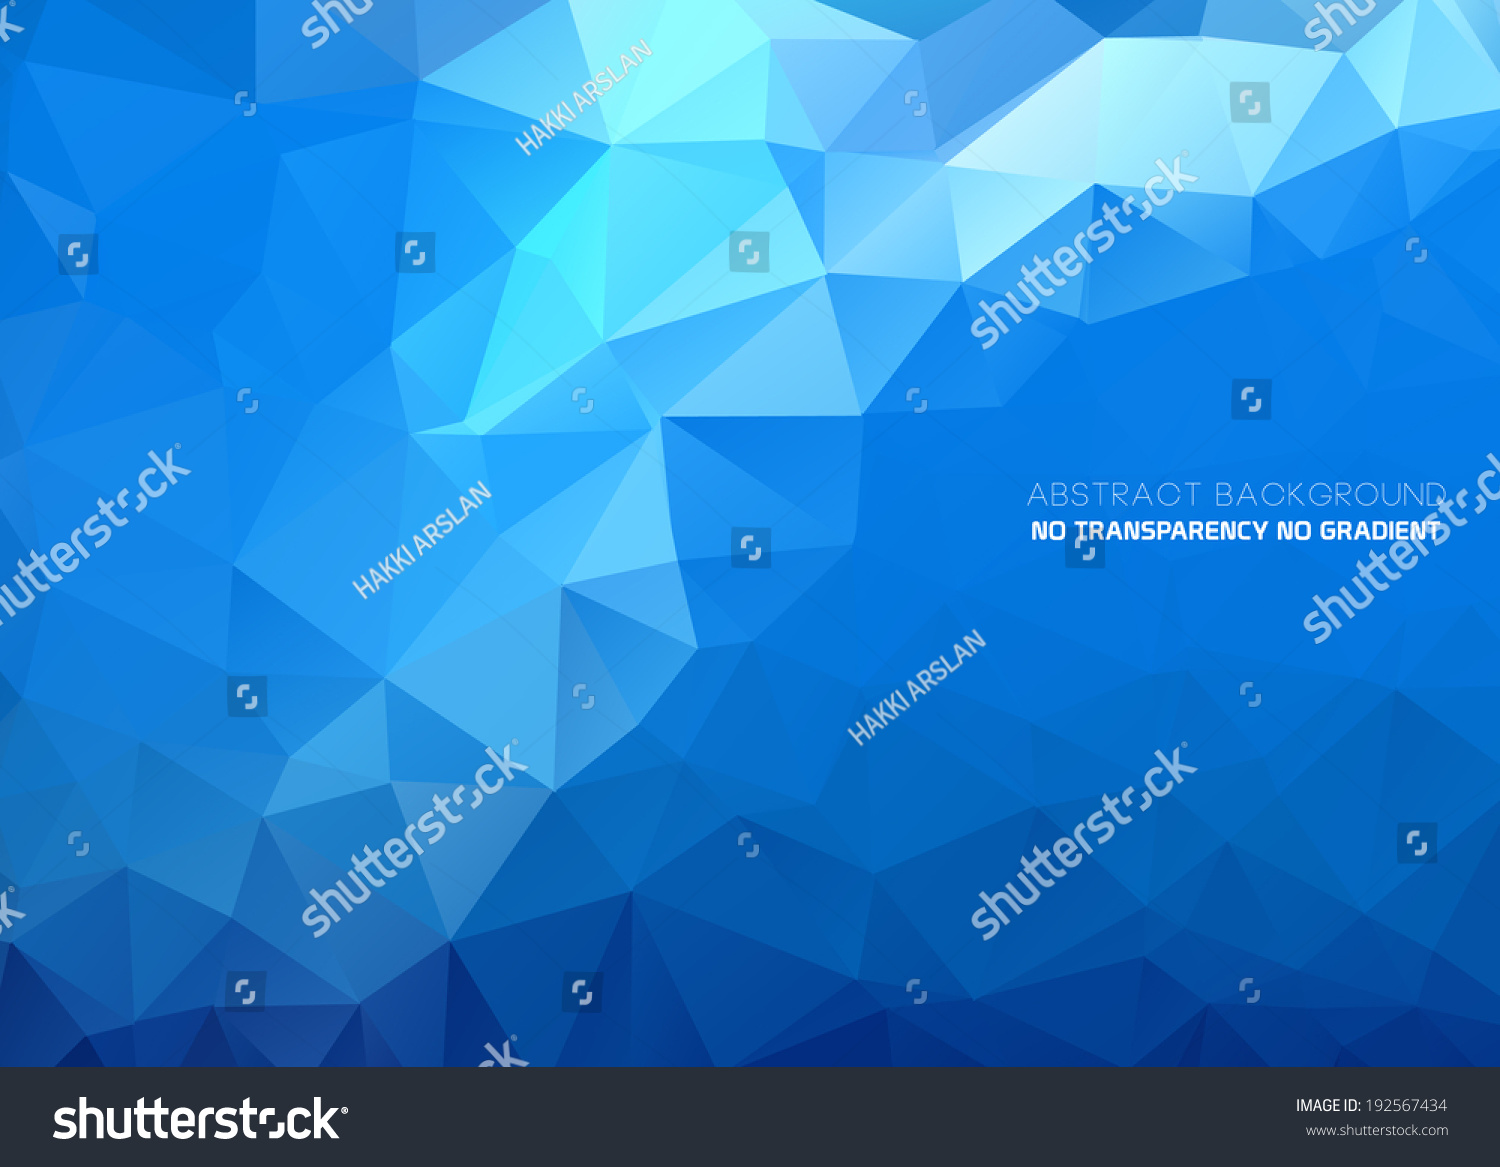 3d Blue Abstract Mesh Background Circles Stock Vektor: Abstract Triangular Blue Background Polygonal Abstract